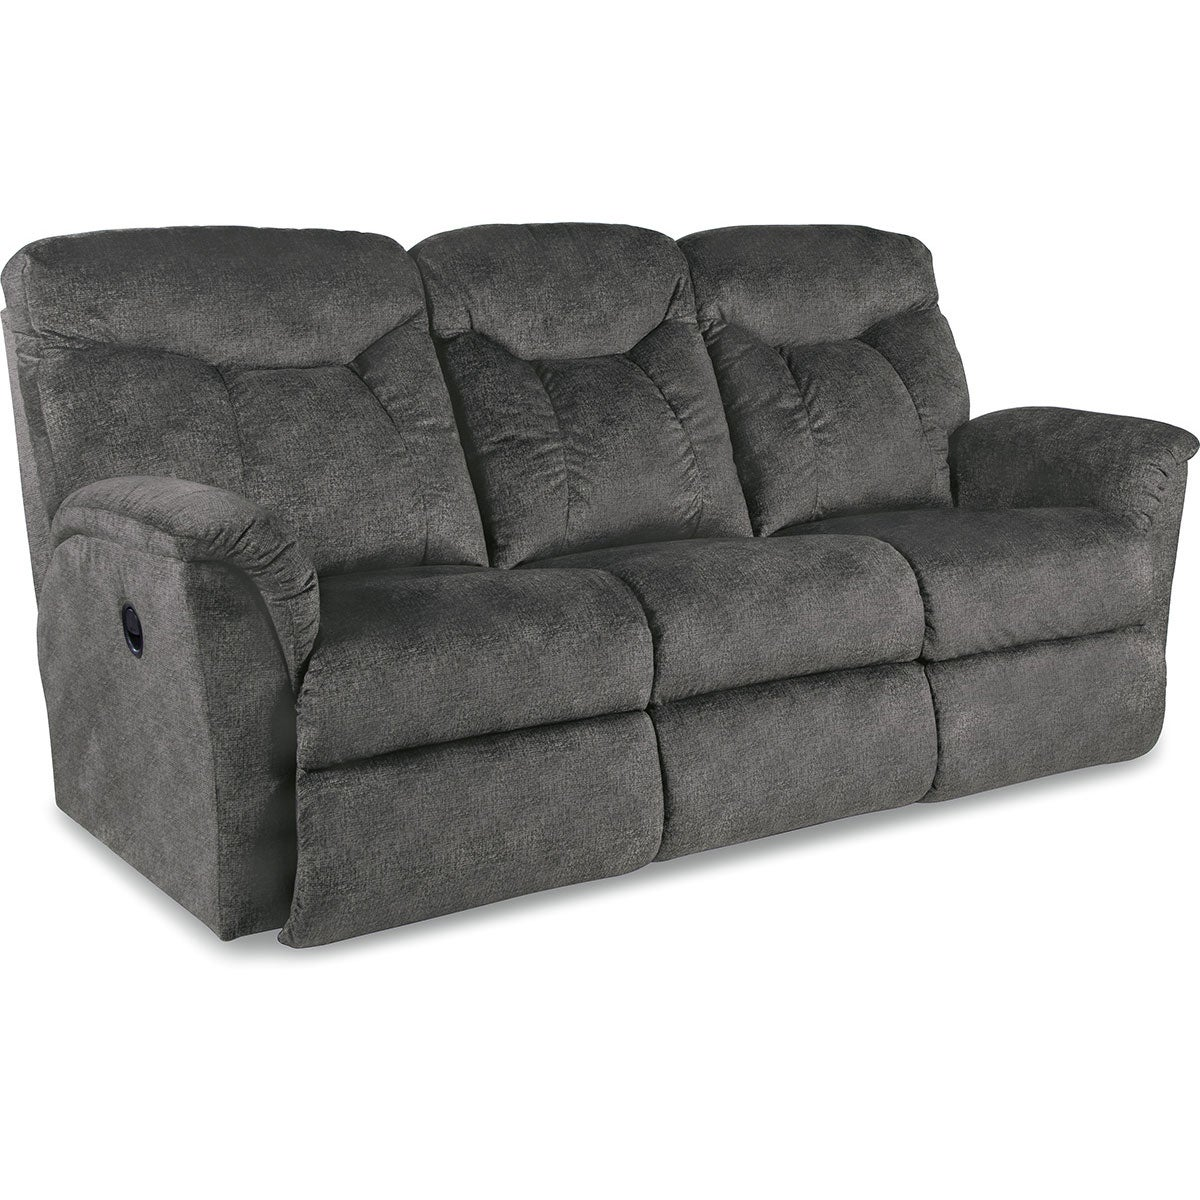 Lazy Boy Recliner Sofa And Loveseat Refil Sofa